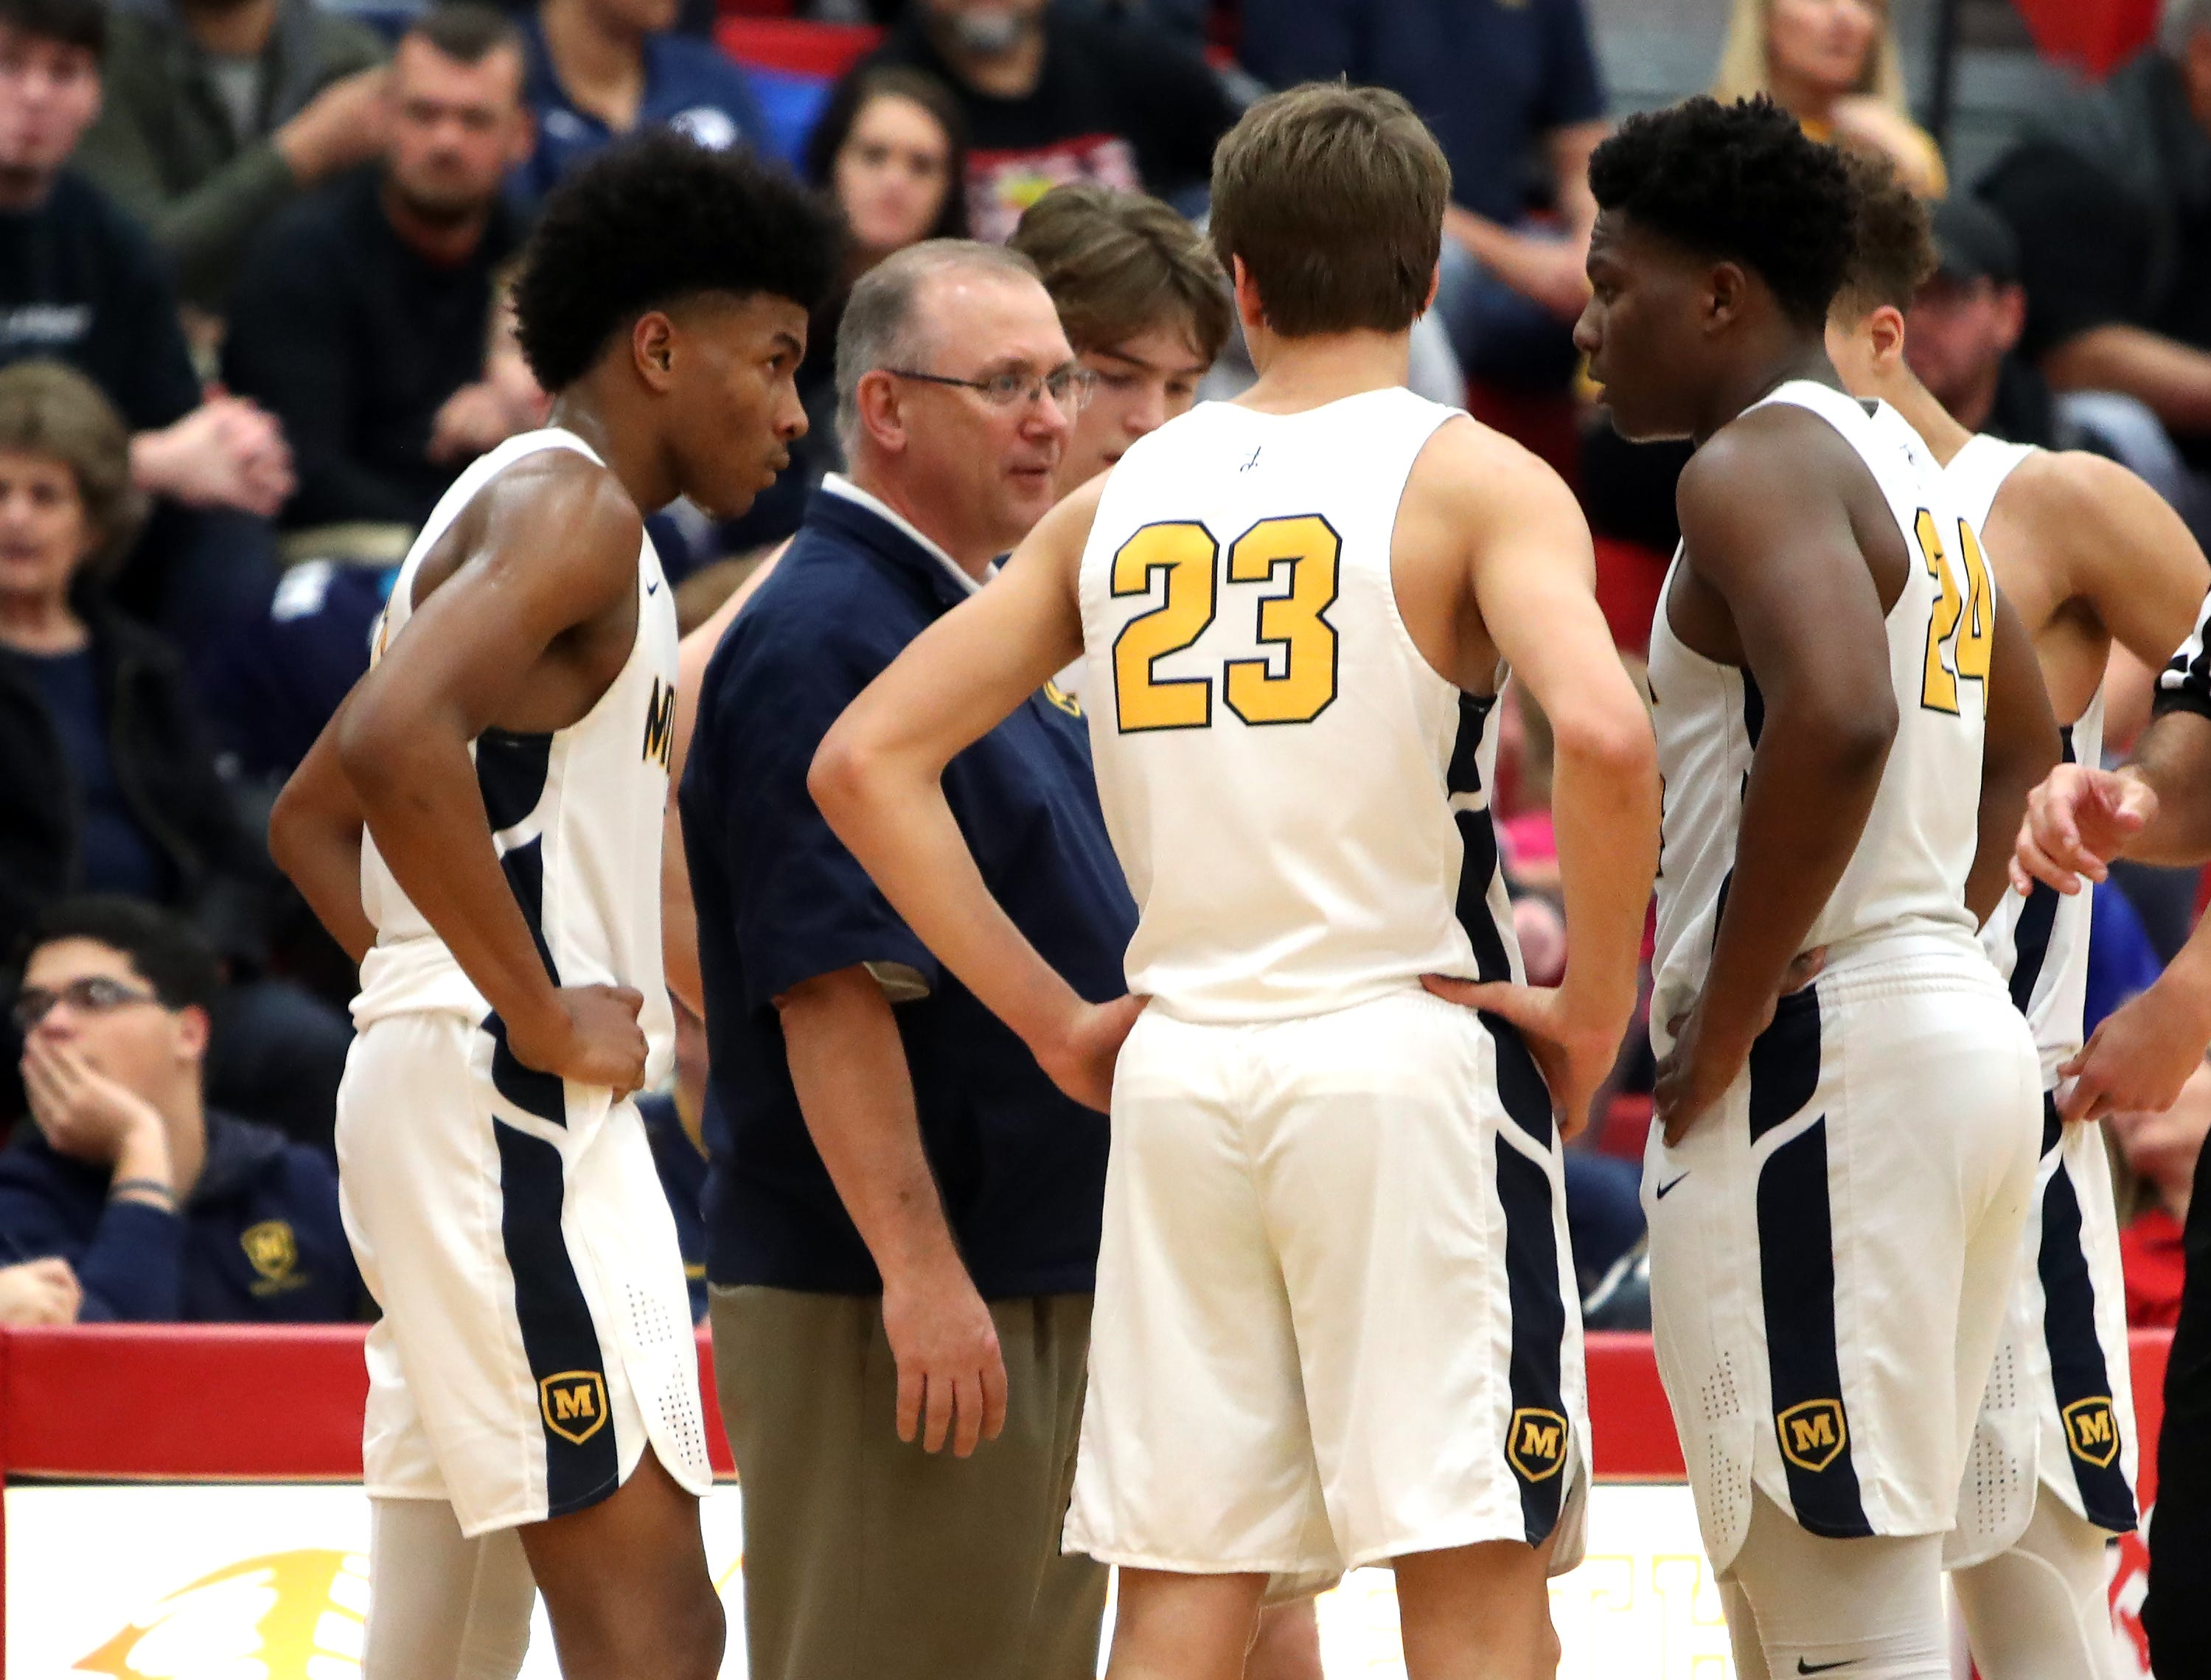 Moeller head coach Carl Kremer talks to his team during a time out at the Ohio Valley Hoops Classic at Hillsboro High School. Moeller defeated Bryan Station 85-42.